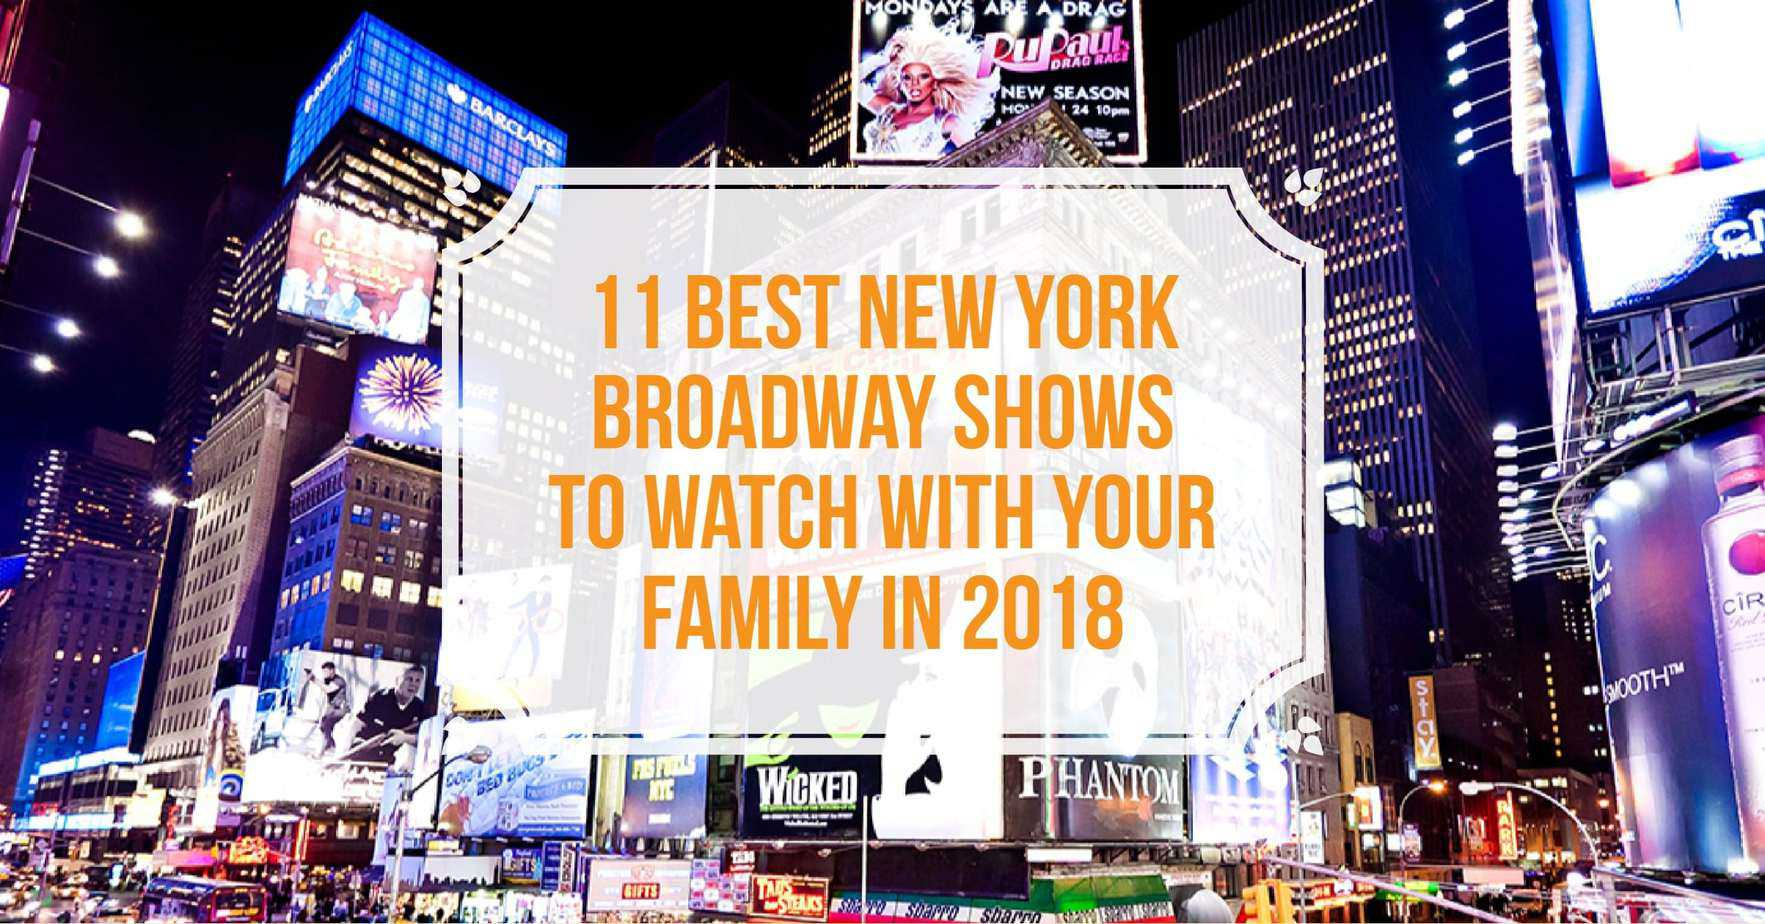 Best Broadway Shows To Watch With Family In 2018